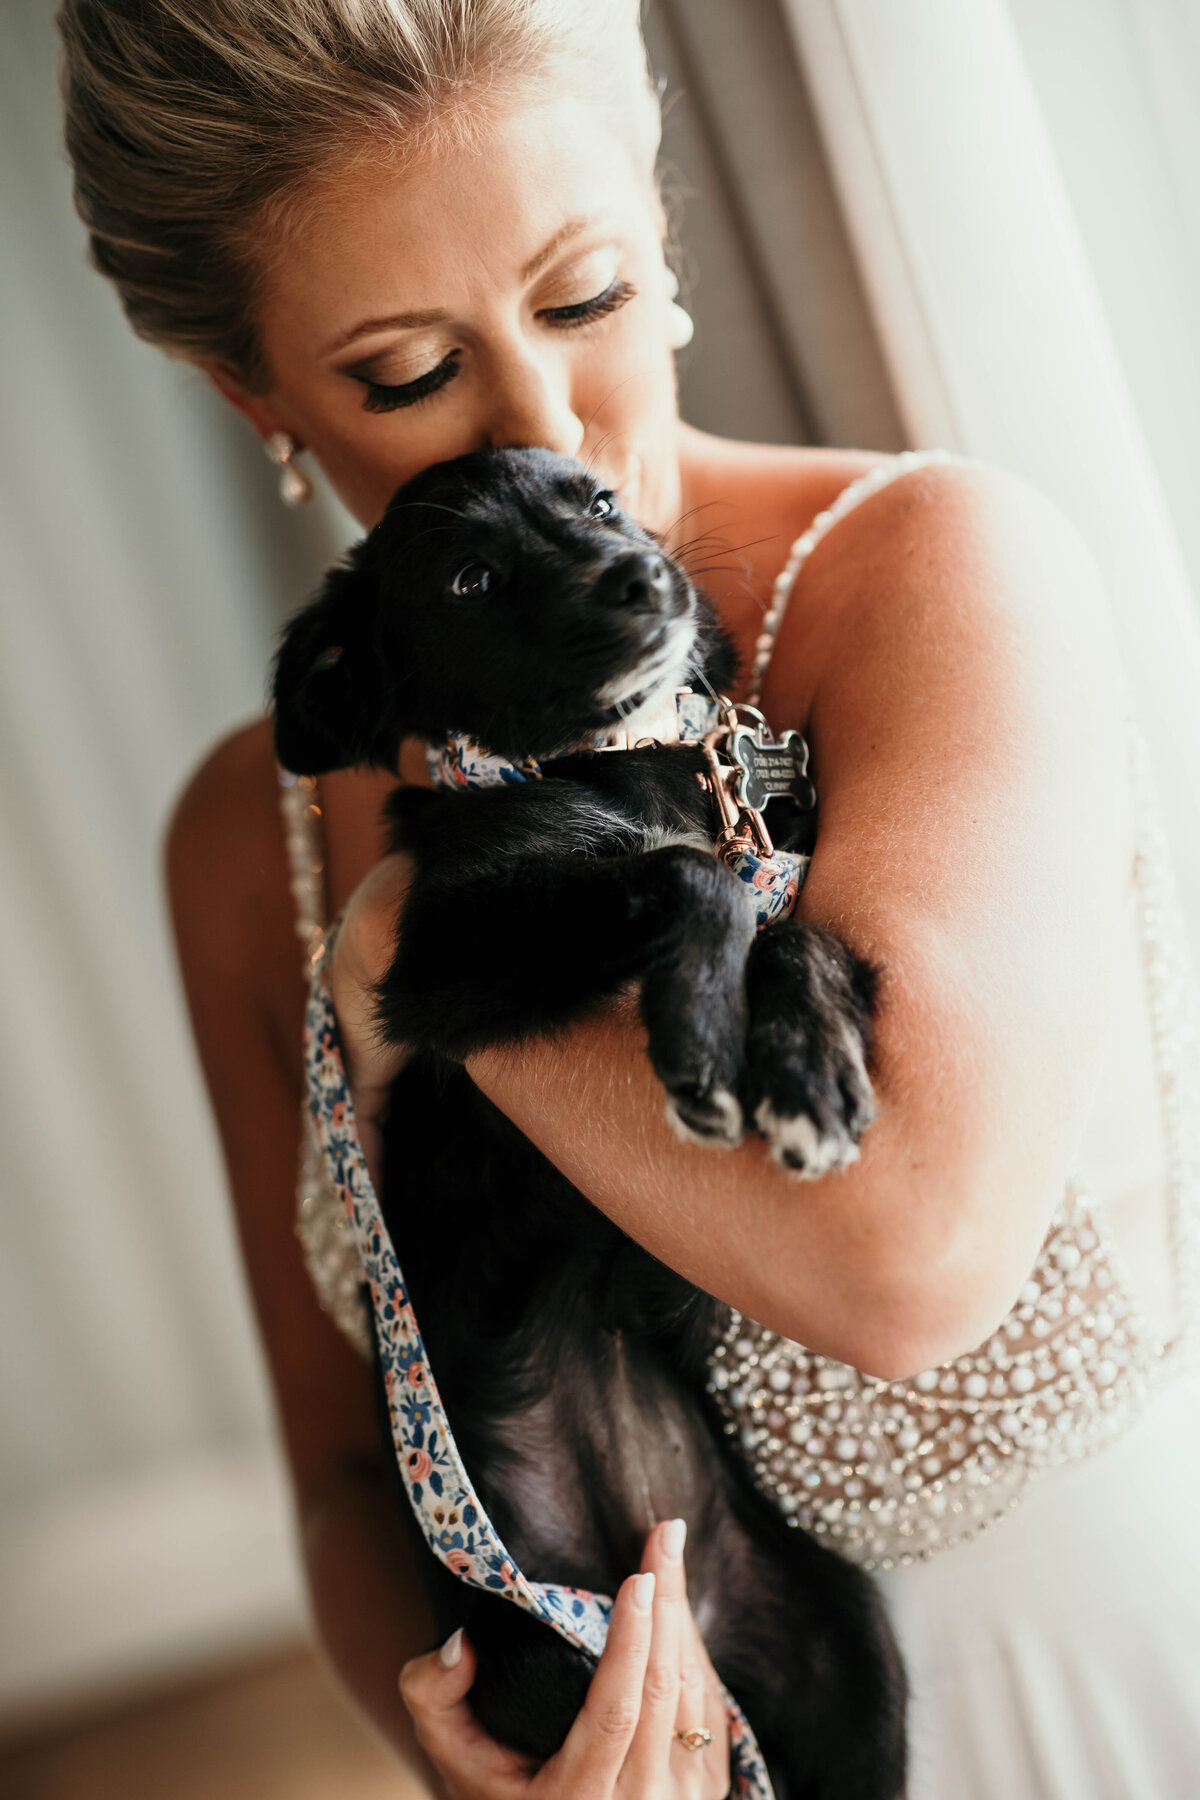 An image of the bride, all dressed up for the wedding, holding a cute puppy in her arms as she hugs and kisses the little dog by Garry & Stacy Photography Co - Clearwater FL wedding photography and videography